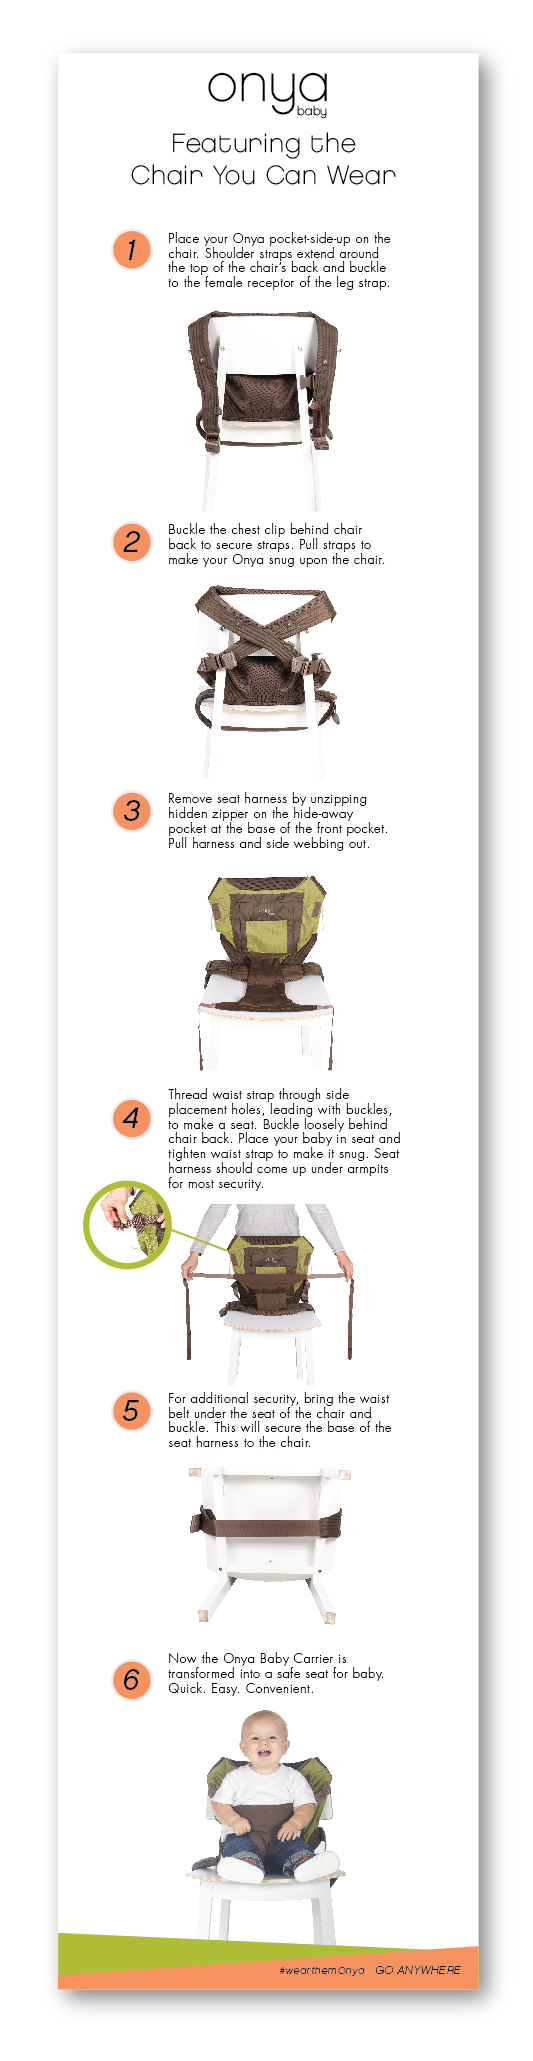 How to convert Onya Baby carrier to a high chair